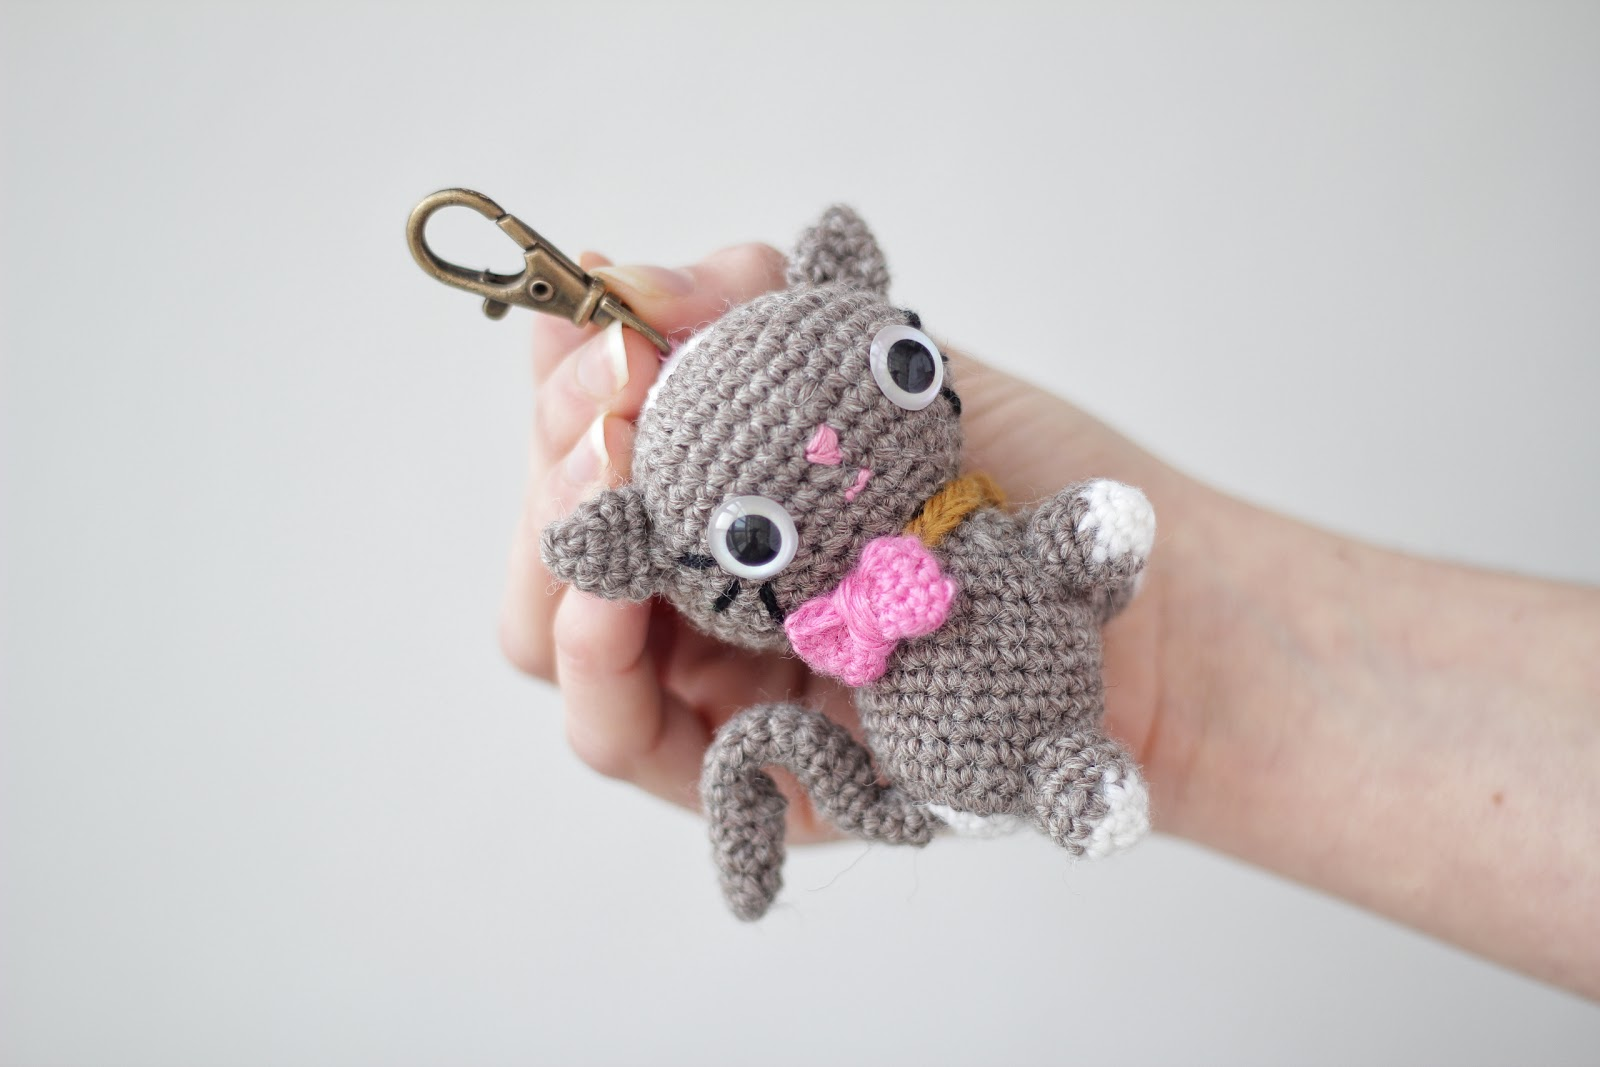 Amigurumi Kitten Patterns : Amigurumi kitten pdf crochet pattern the sun and the turtle